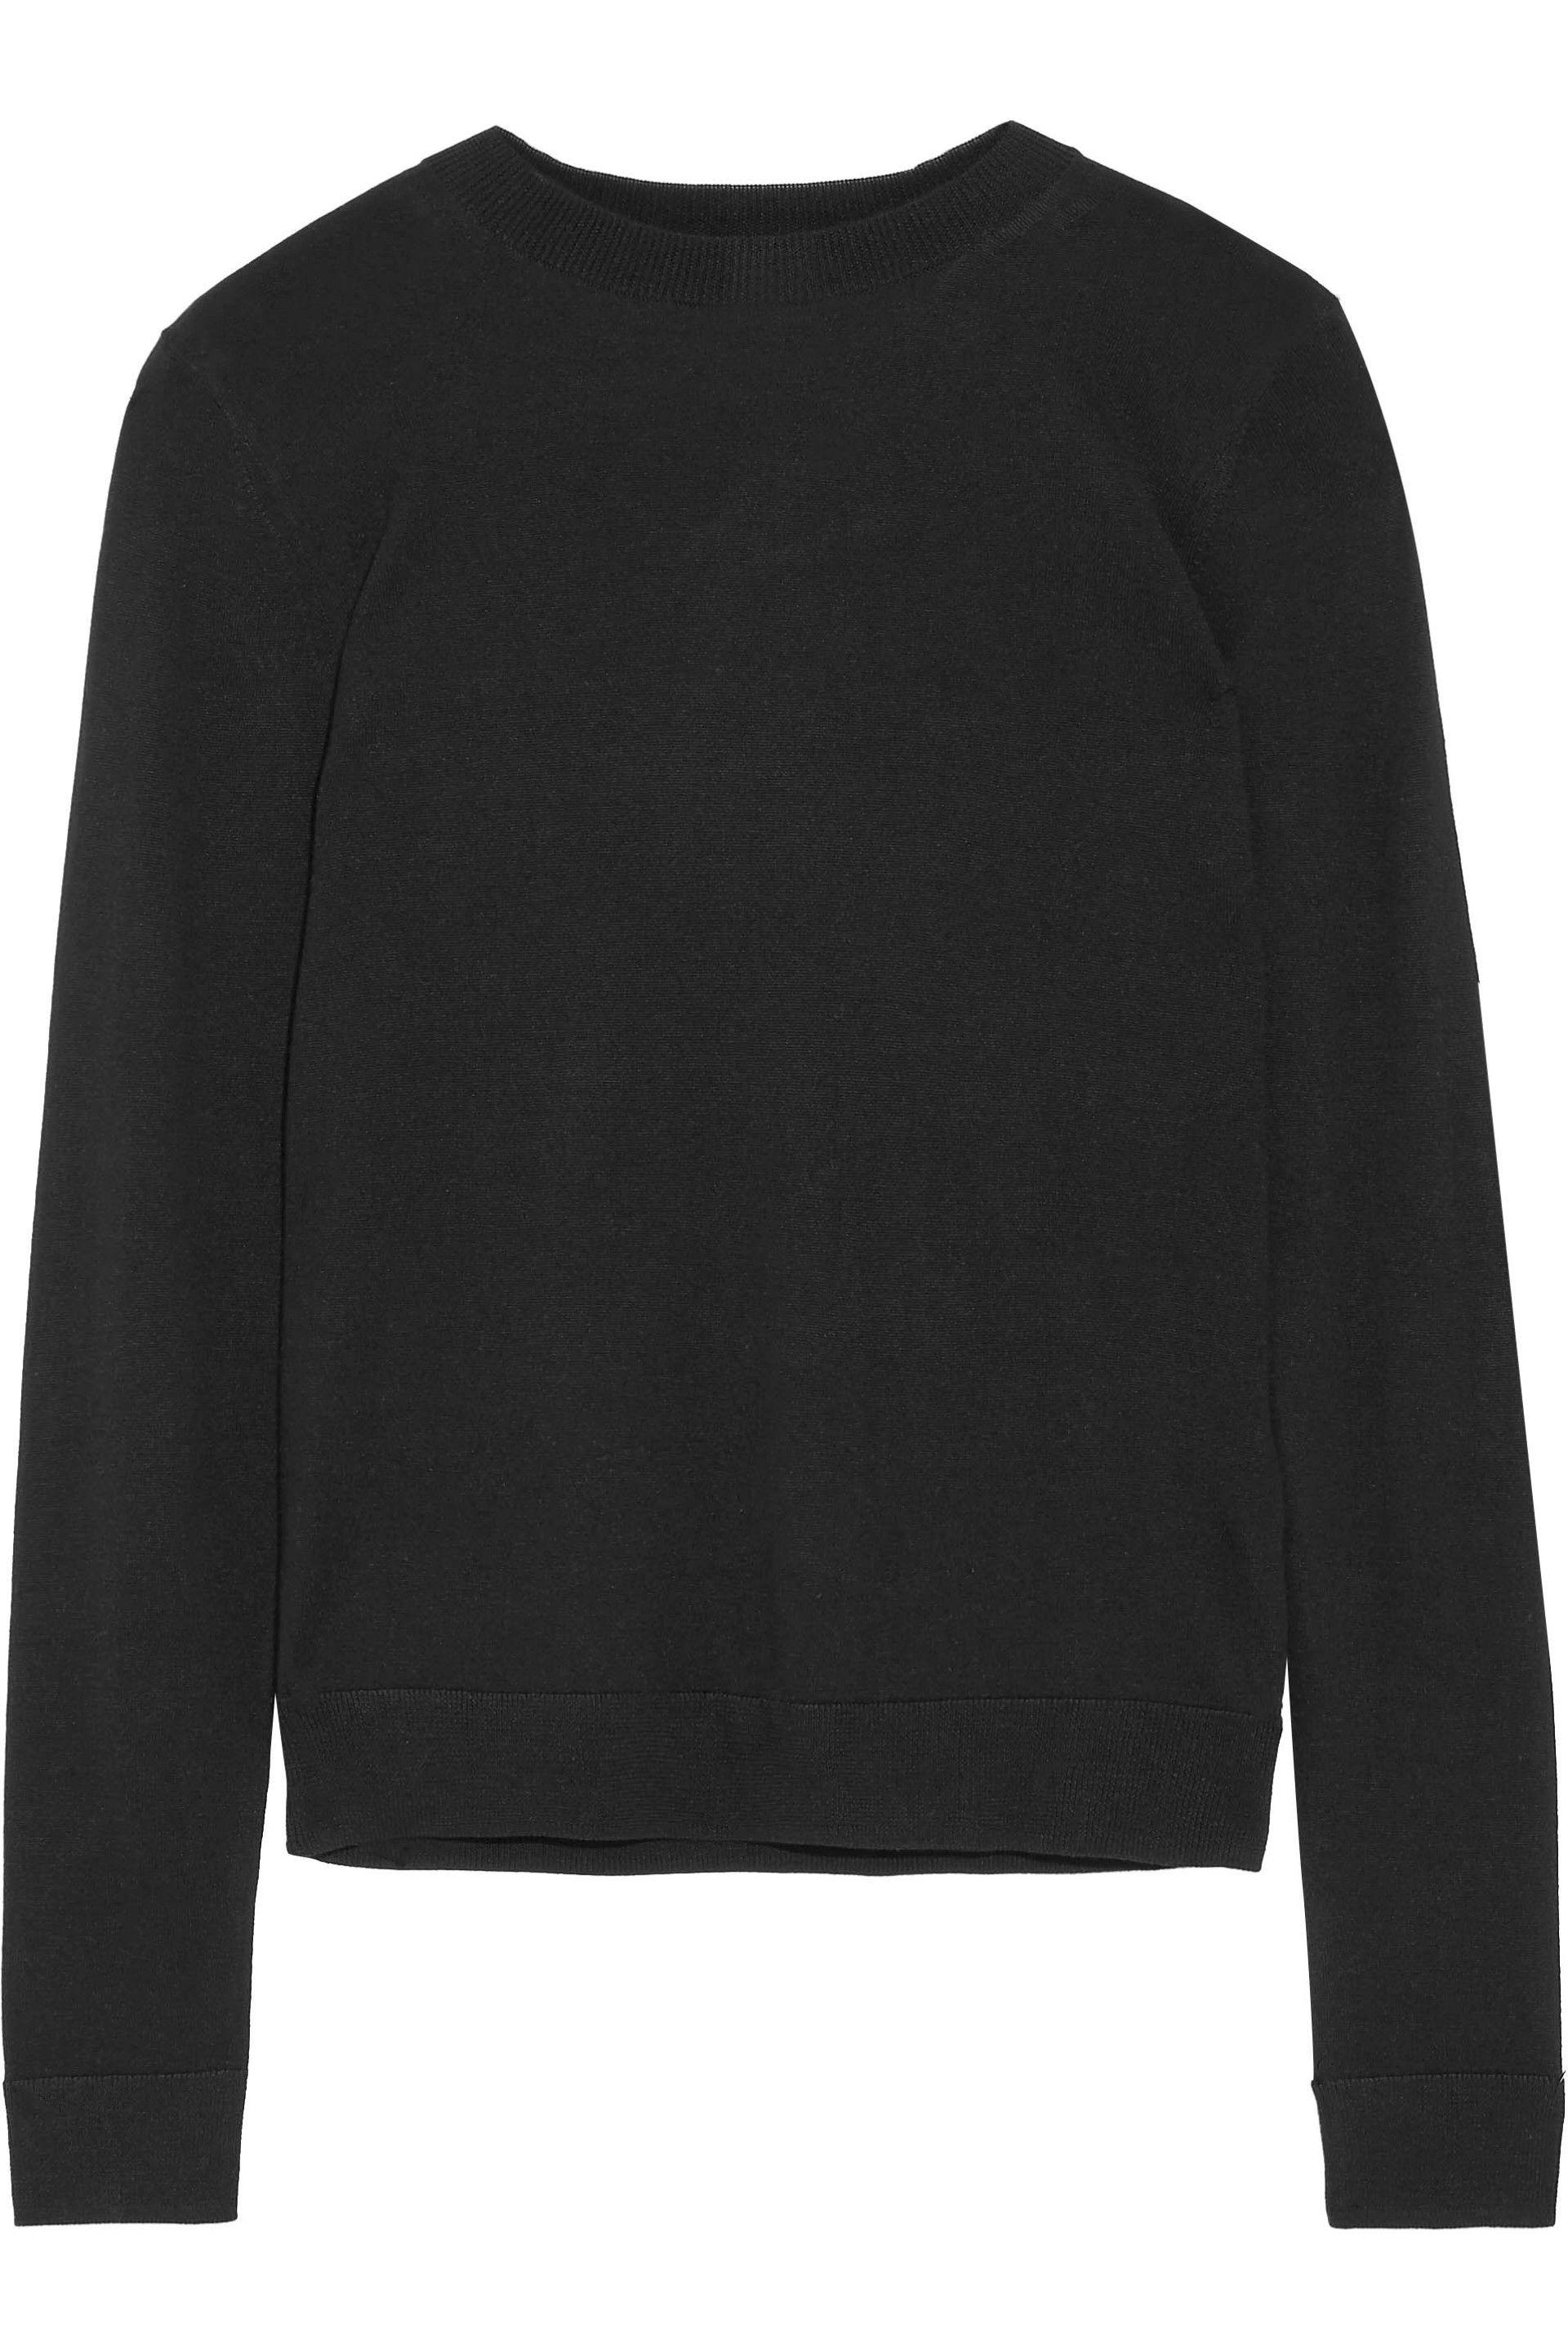 With Mastercard Sale Online Iris & Ink Woman Hattie Silk And Cashmere-blend Sweater Black Size XL IRIS & INK Outlet Deals 0SbB9AnuDl